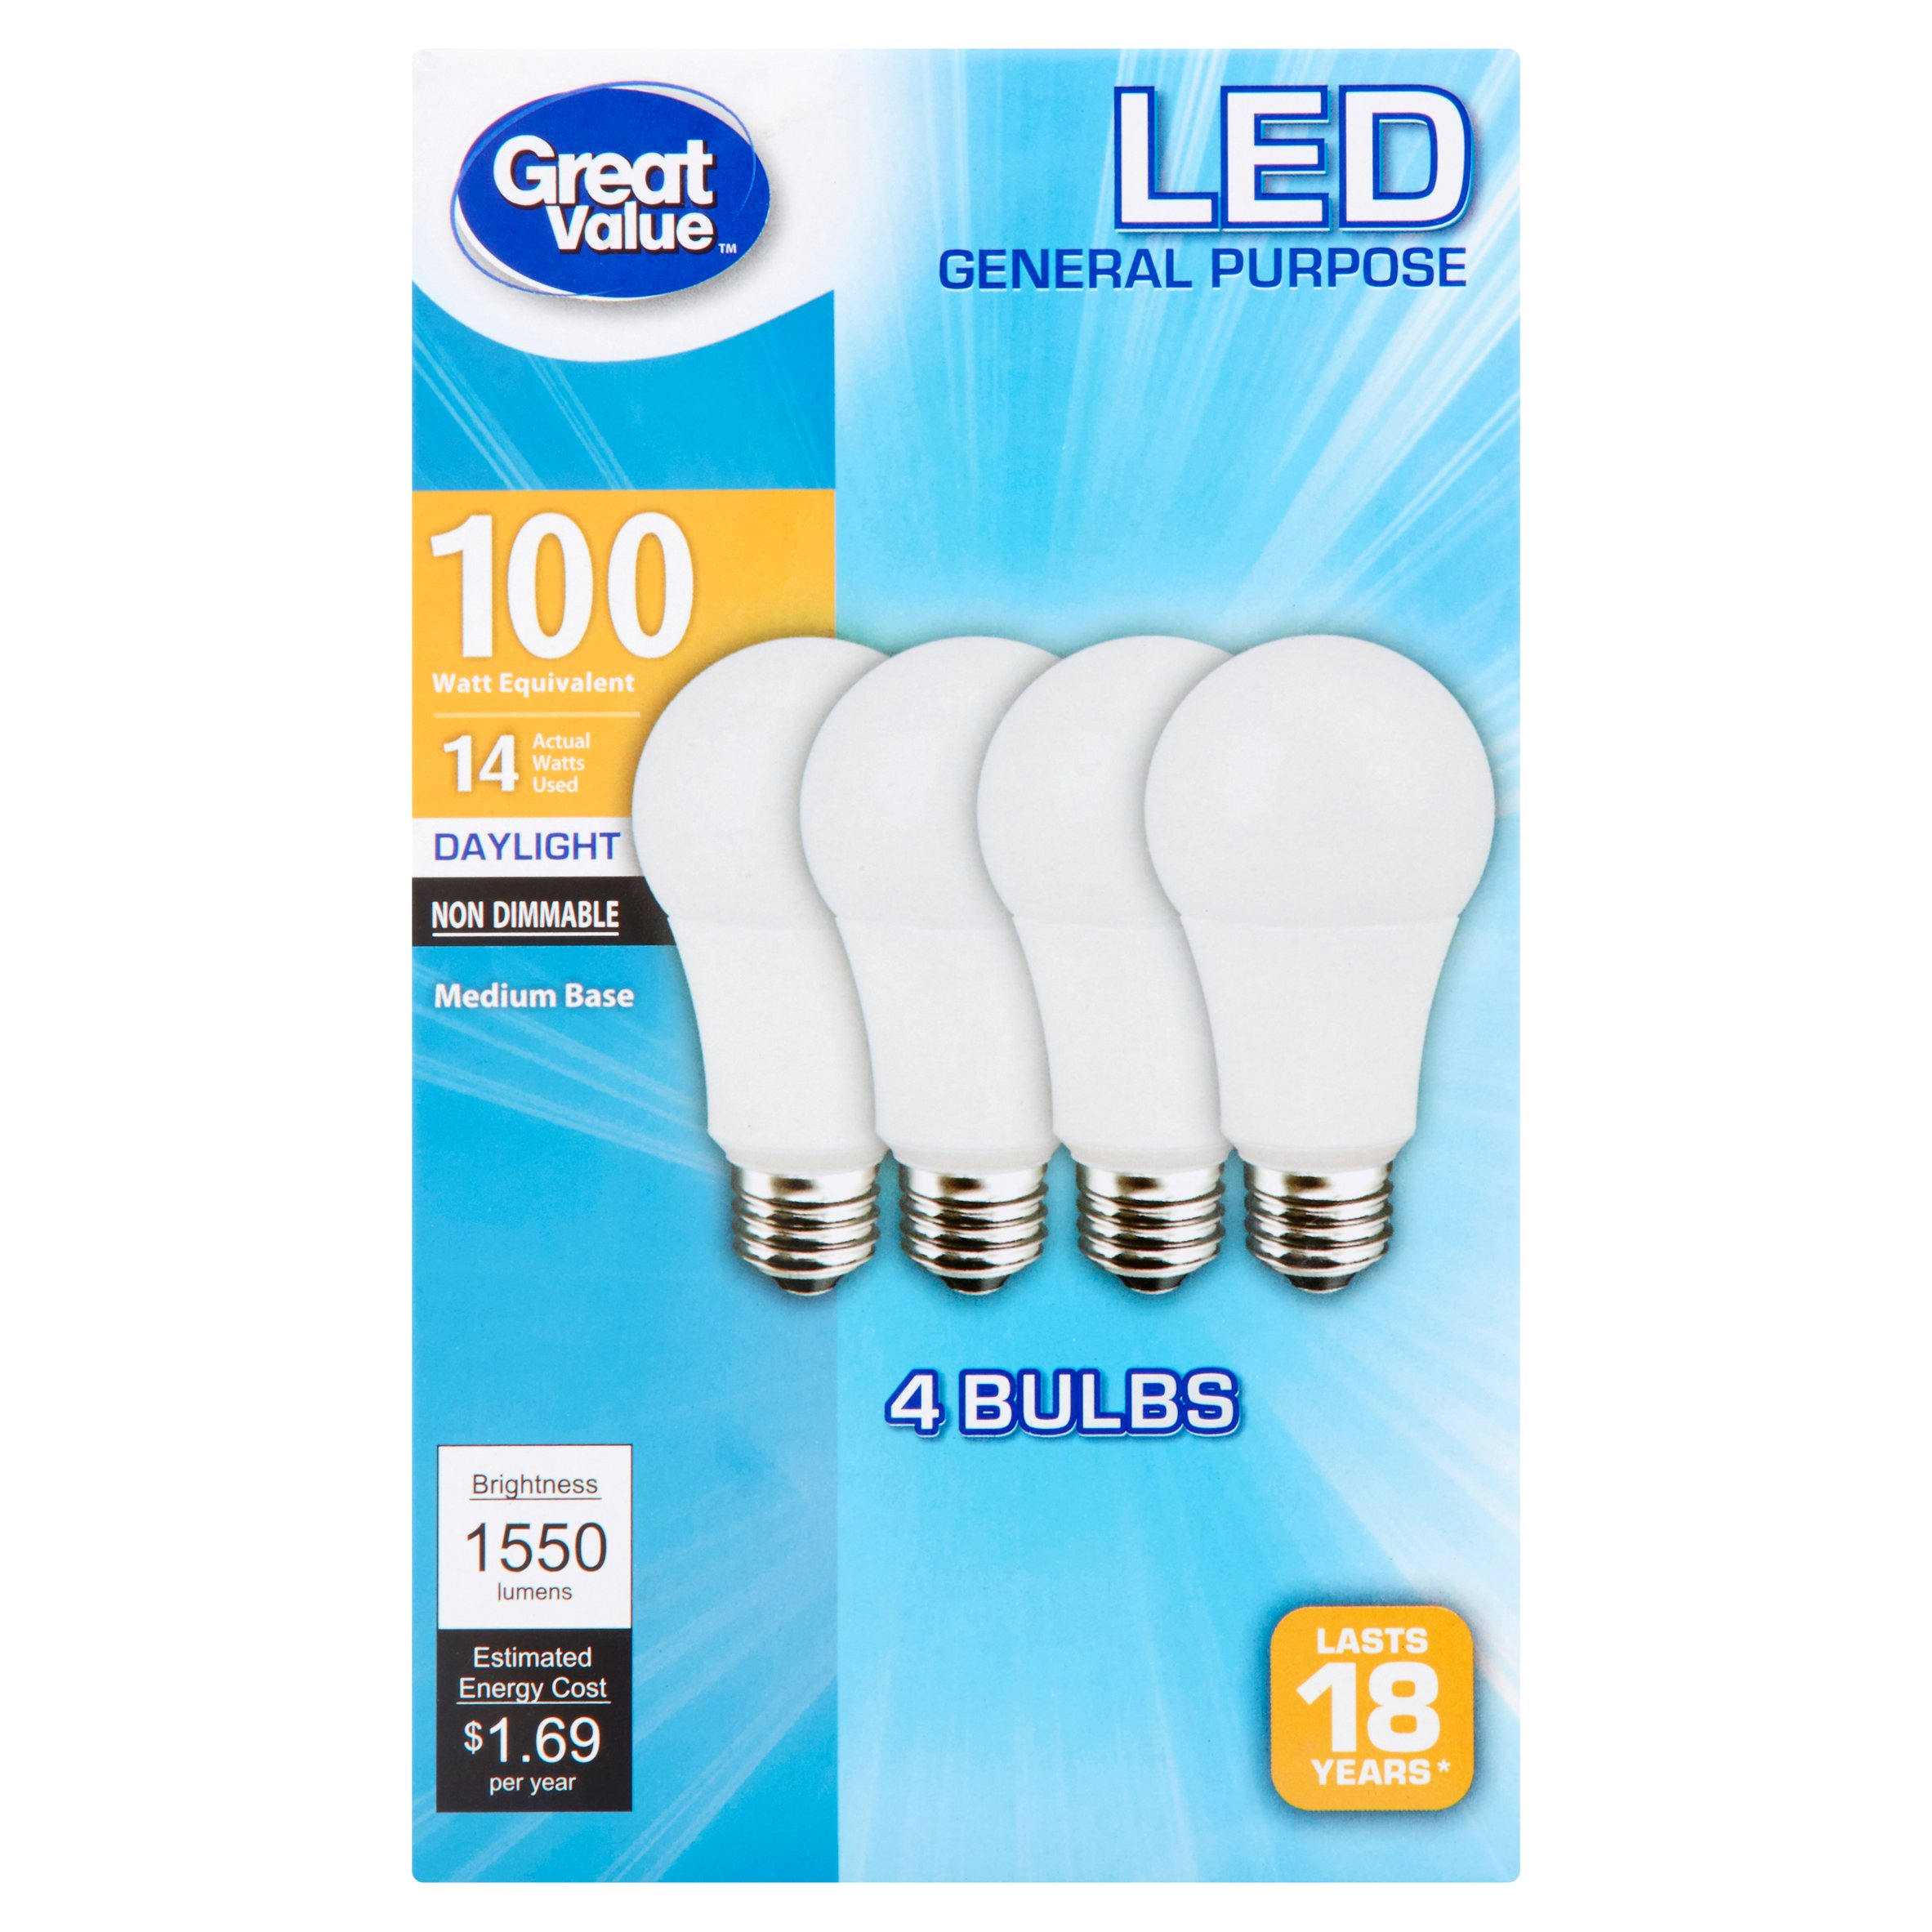 great value led light bulbs 14 w 100w equivalent daylight 4